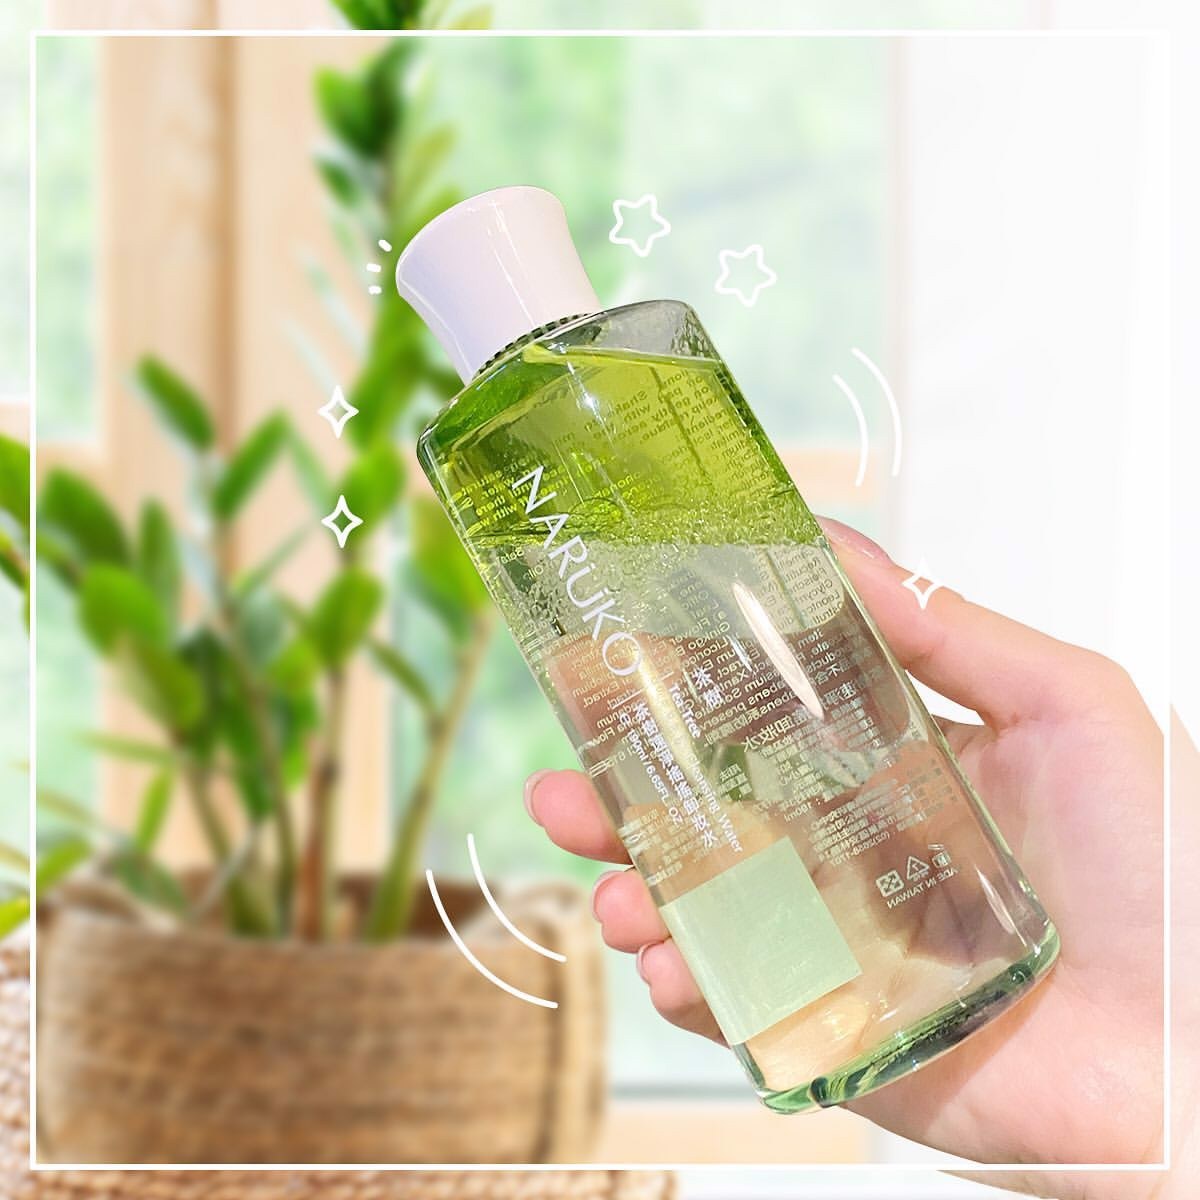 Nước Tẩy Trang Hai Lớp Naruko Tea Tree Shake-Up Cleansing Water 190ml